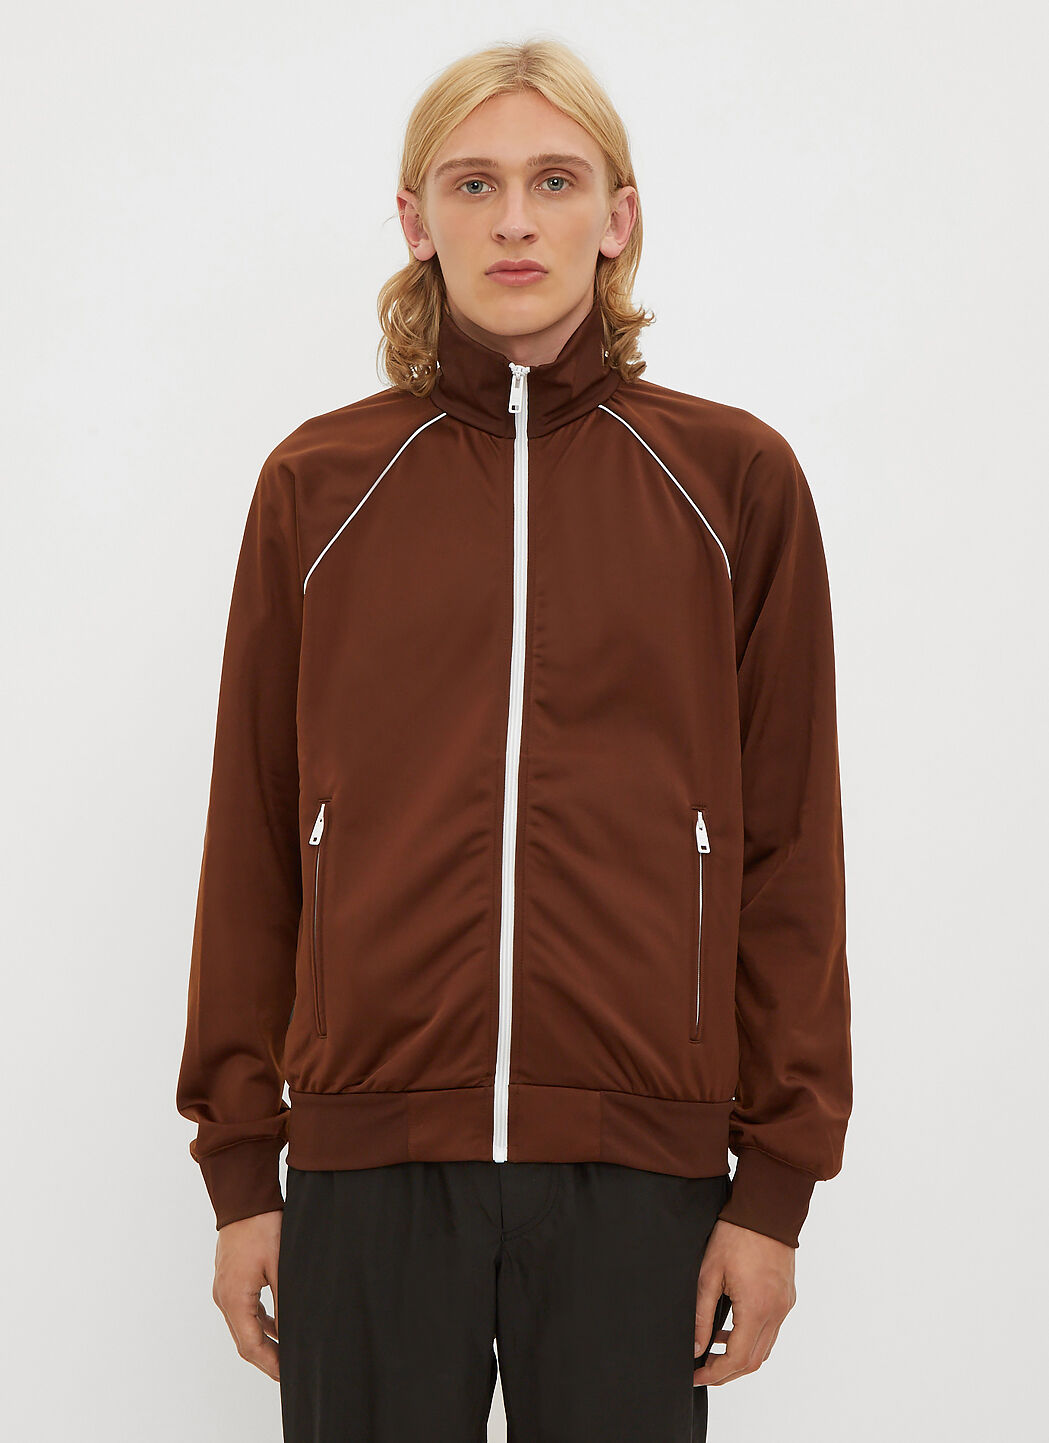 Online For Sale Bi-Material Track Top Prada 100% Authentic Cheap Price Eae03Zc